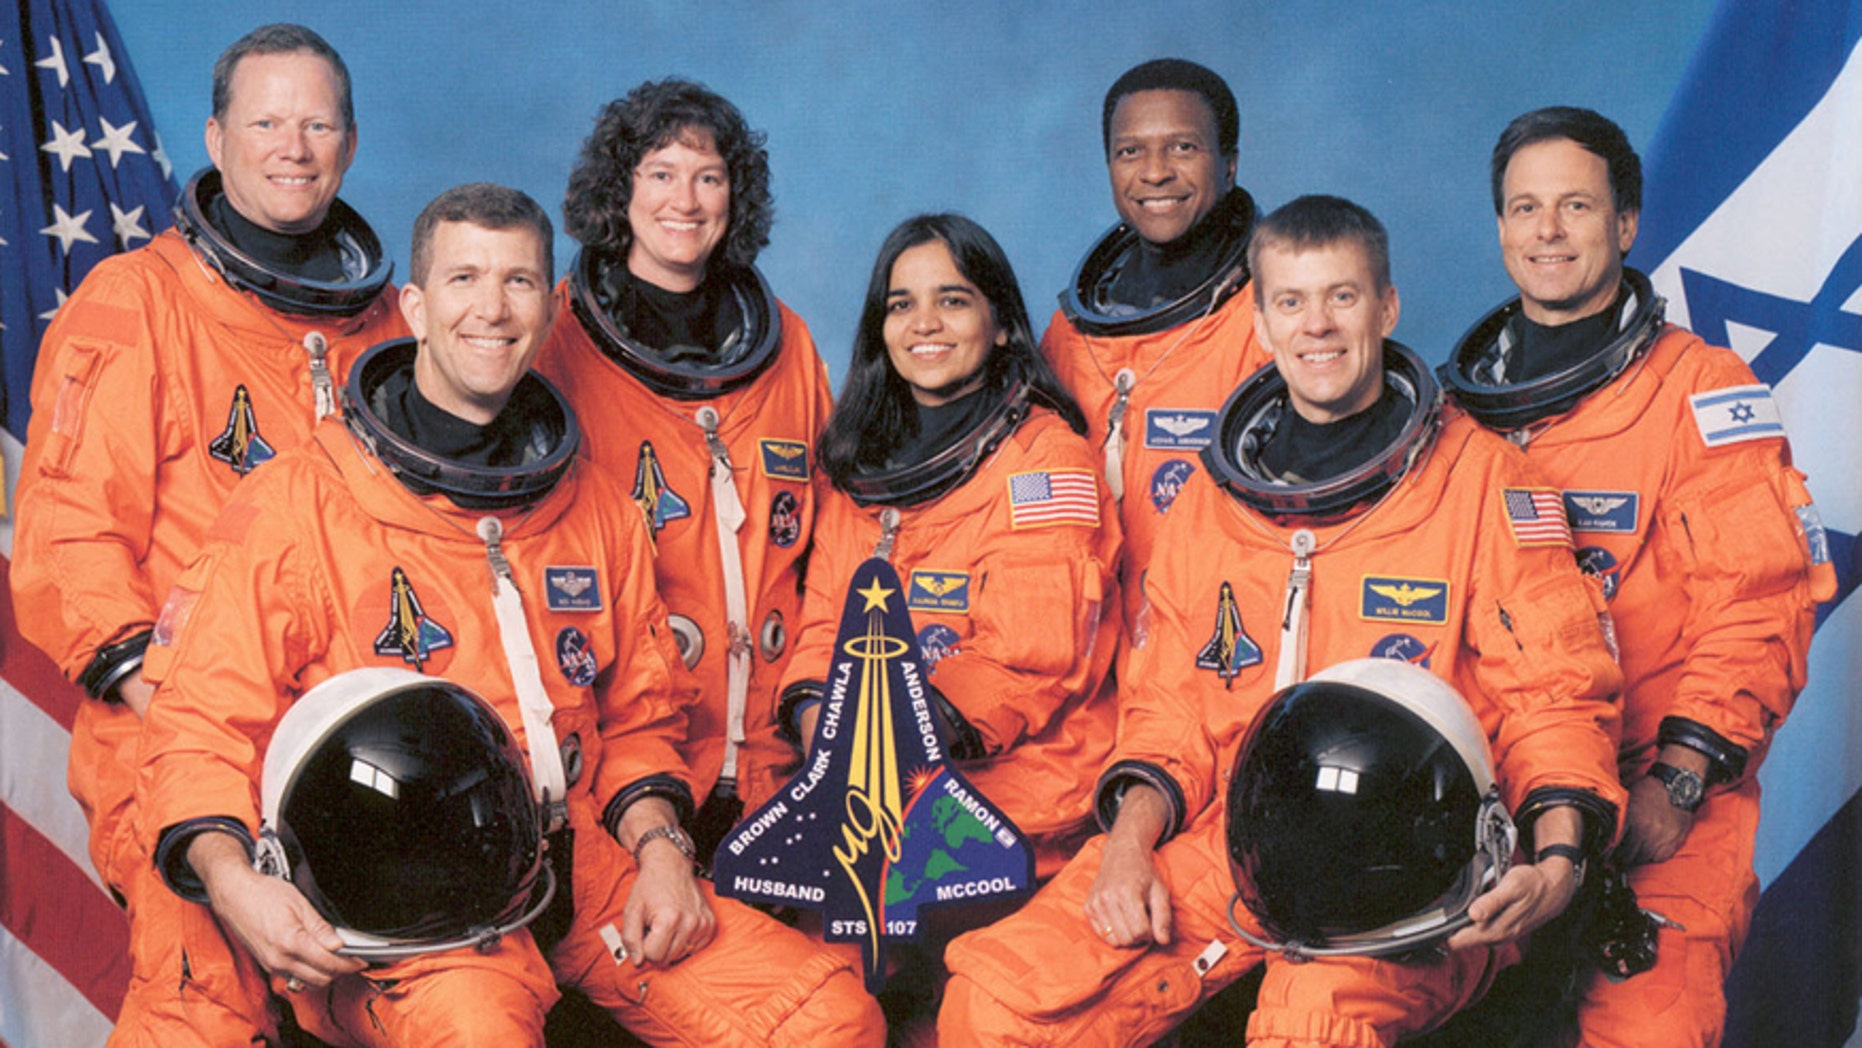 Space Shuttle Columbia mission STS-107 pose at Johnson Space Center in Houston in this January 1,2002 NASA handout photo.